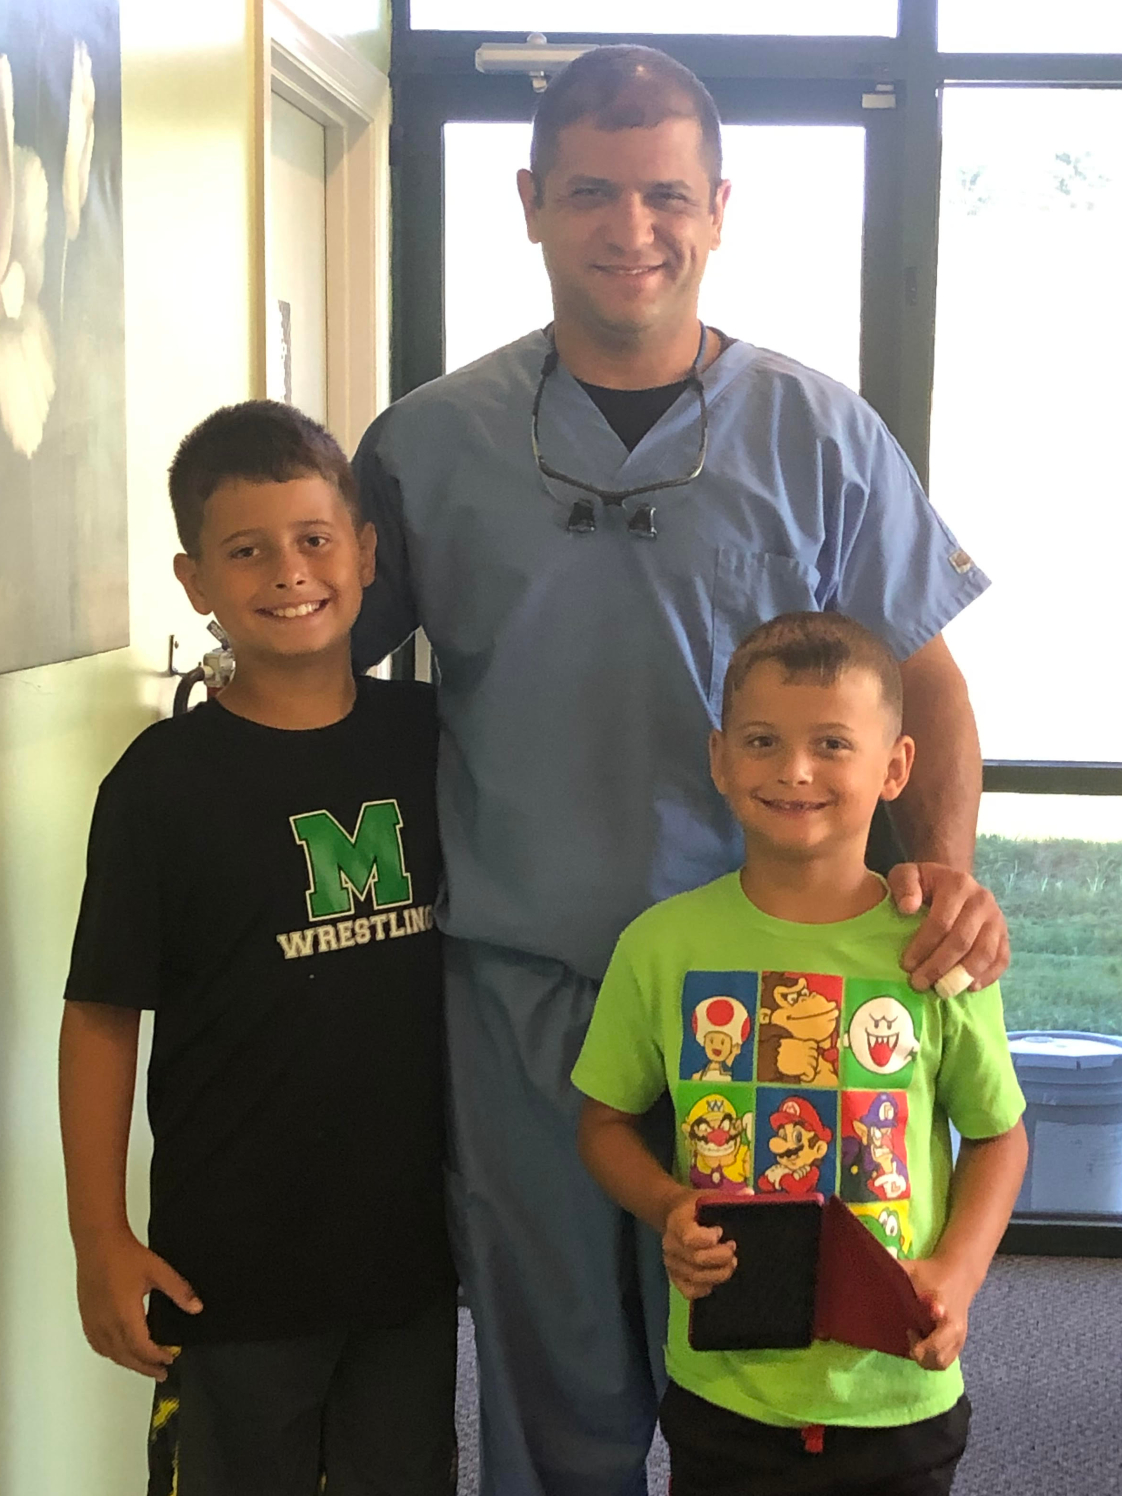 Dr. Balsly and his two sons